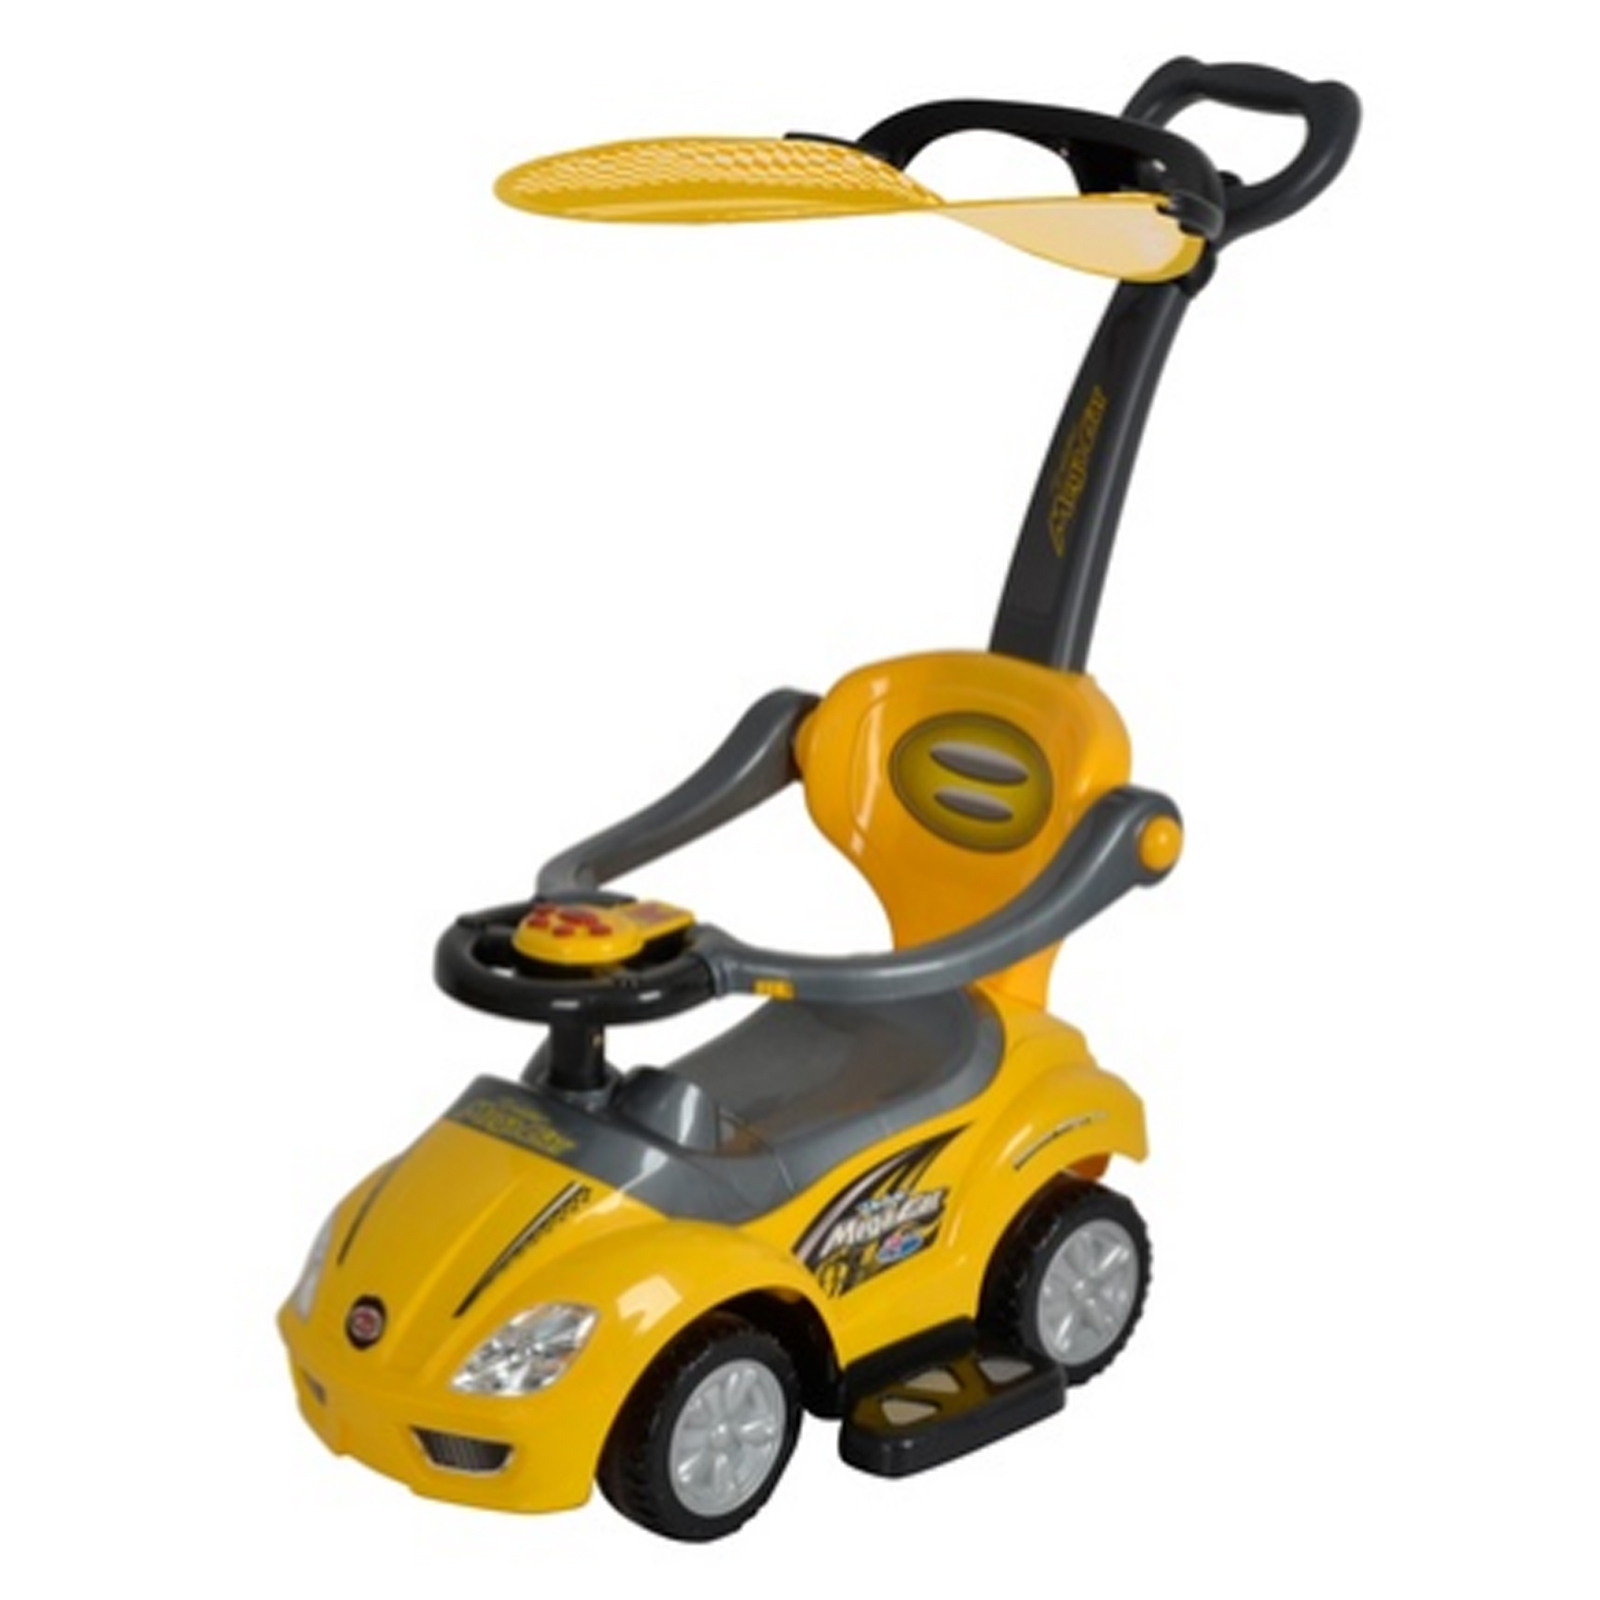 Stroller Ride On Push Car with Sun Canopy - Yellow